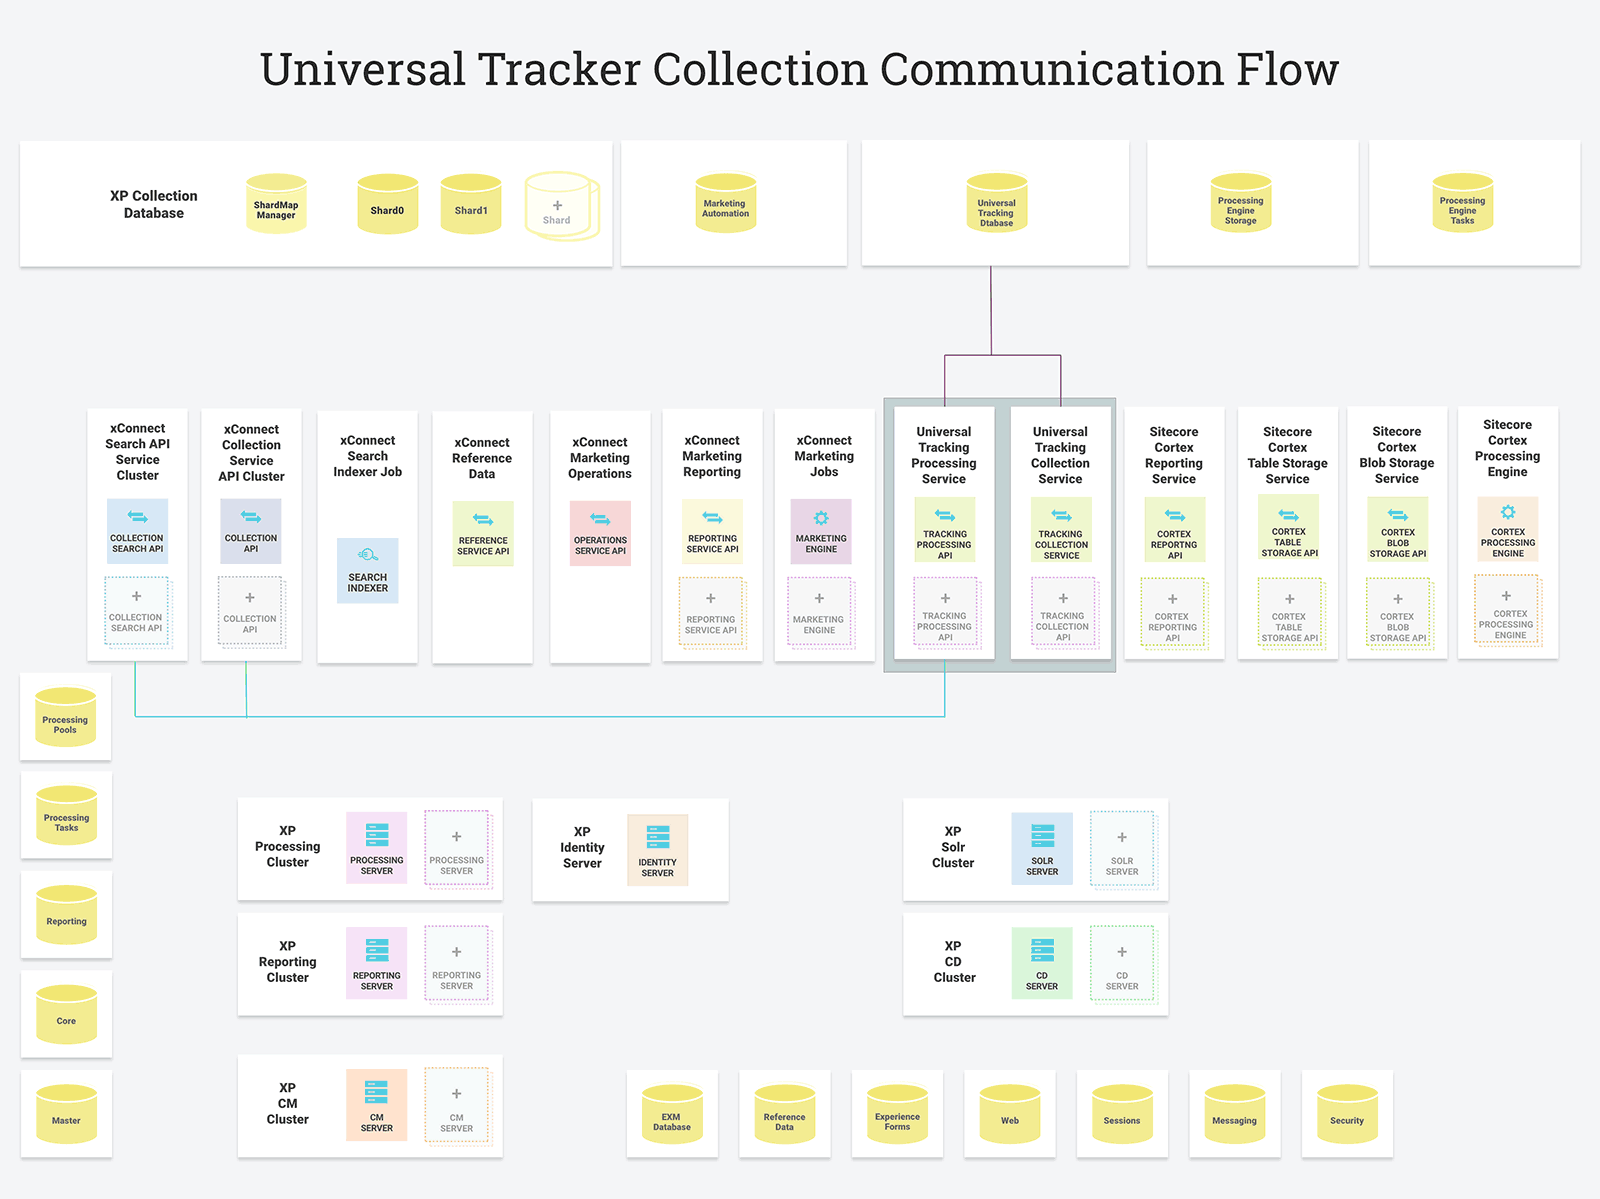 Universal Tracker Collection Communication Flow